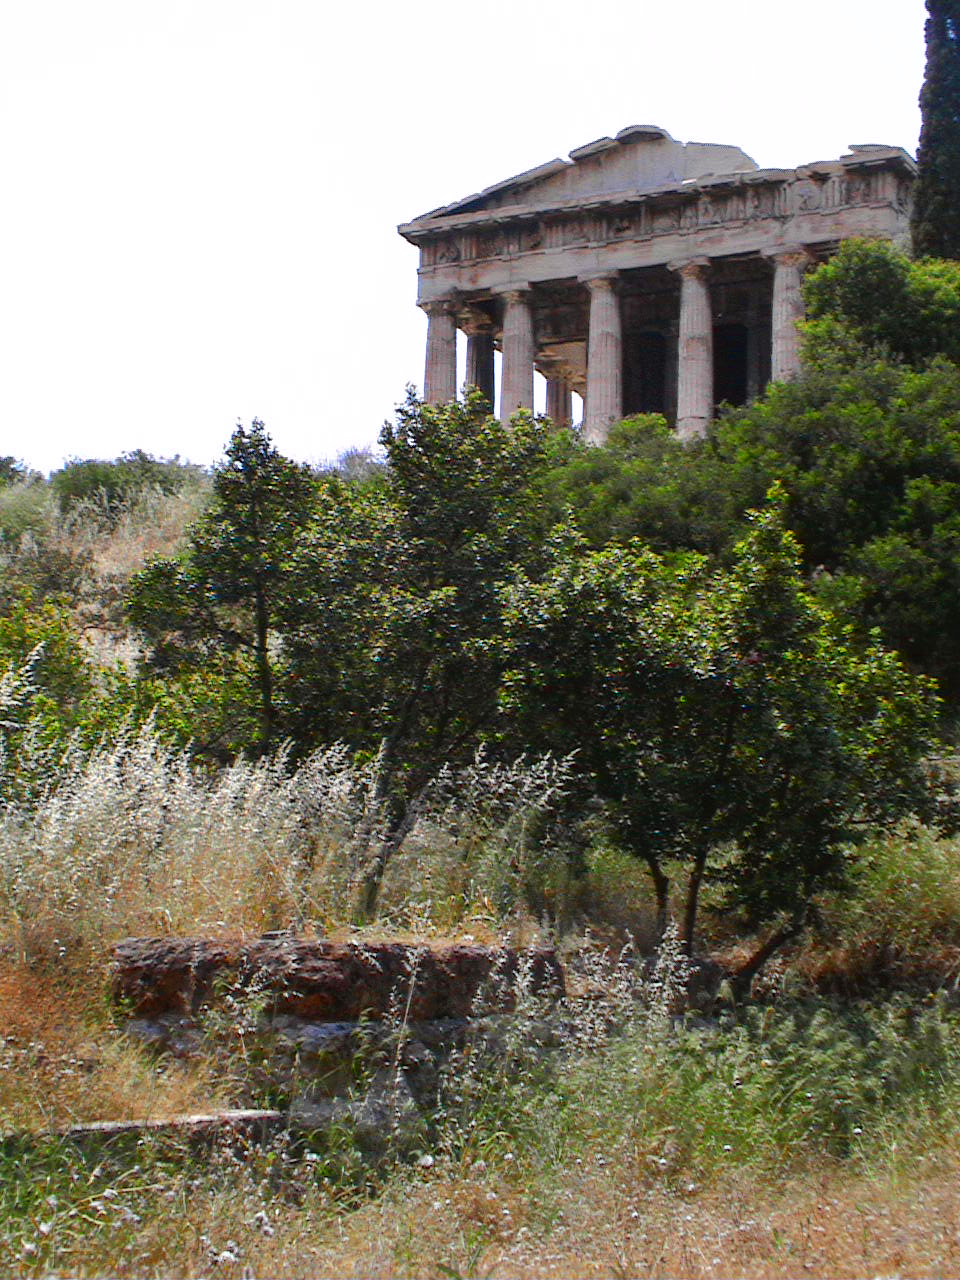 Temple of Hephaistos Gardenvisit.com